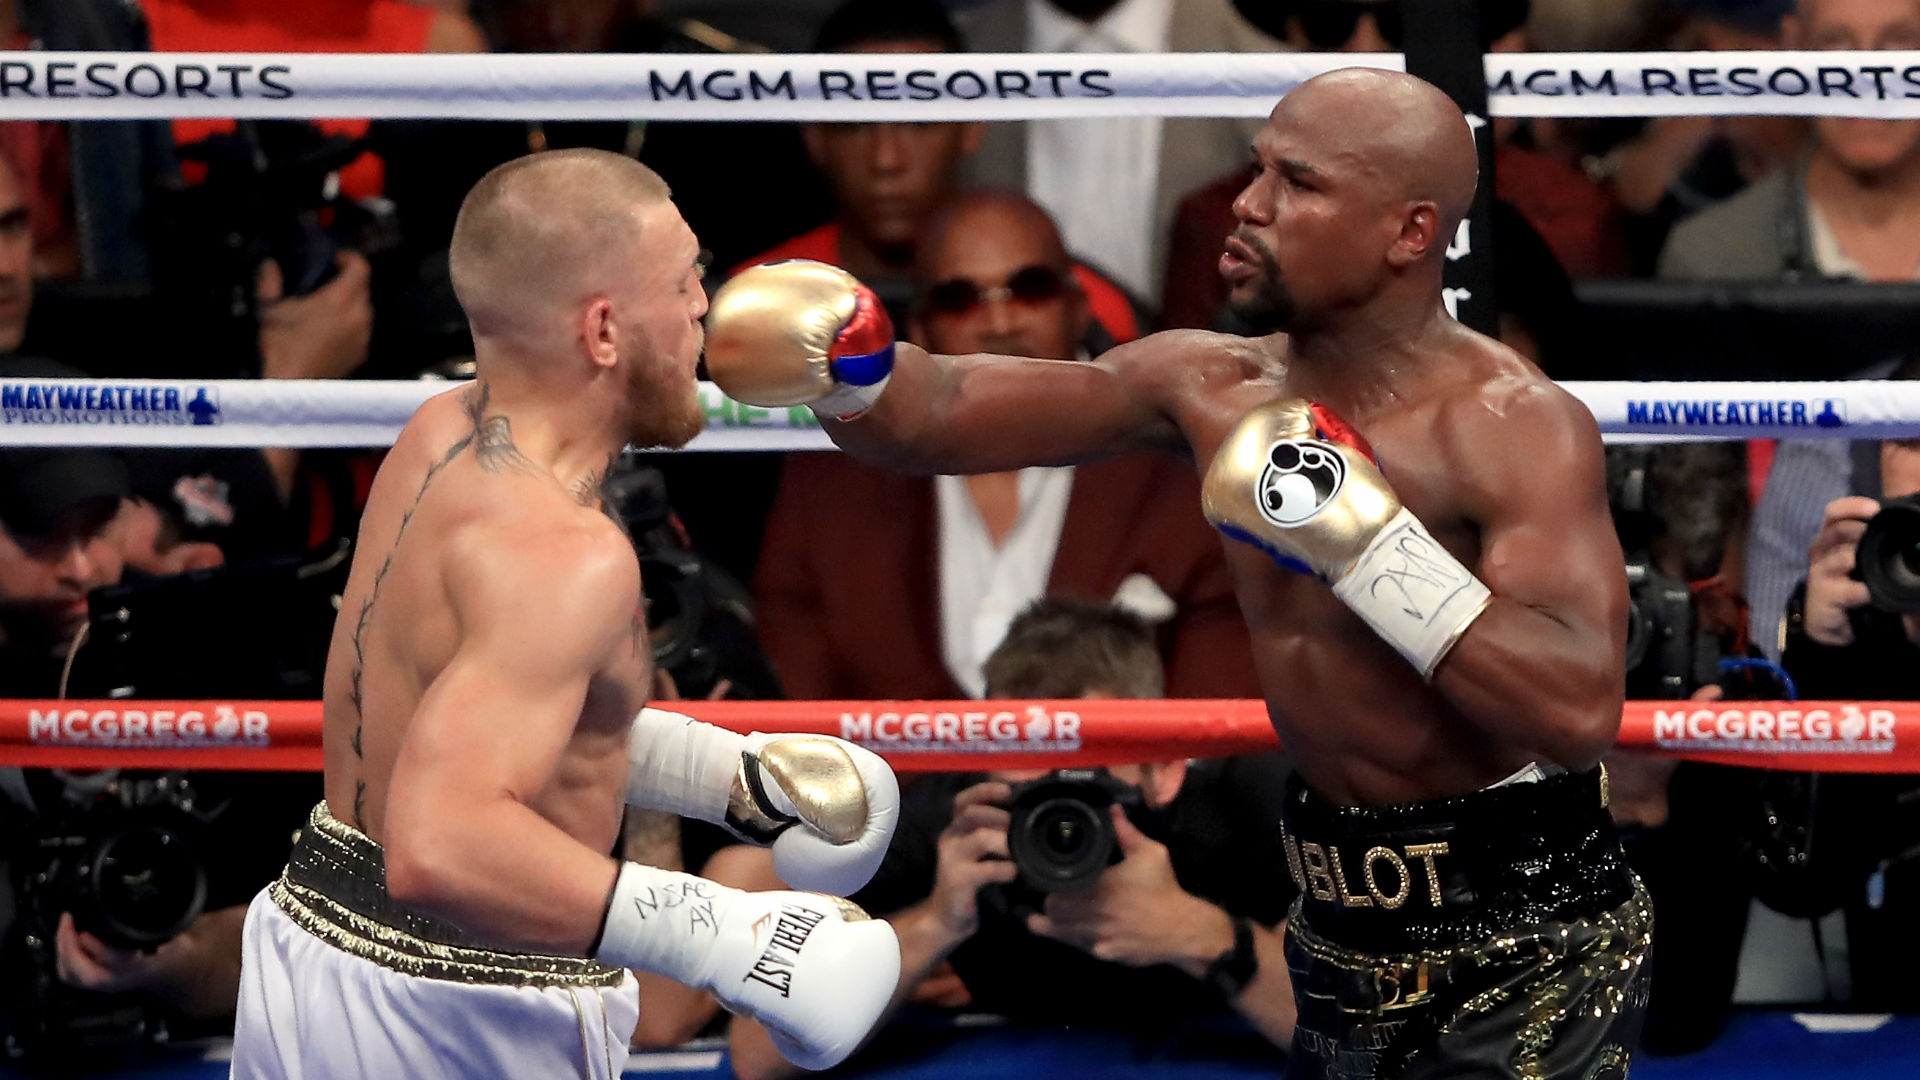 McGregor v Mayweather II: That rematch will happen at some stage, vows Conor